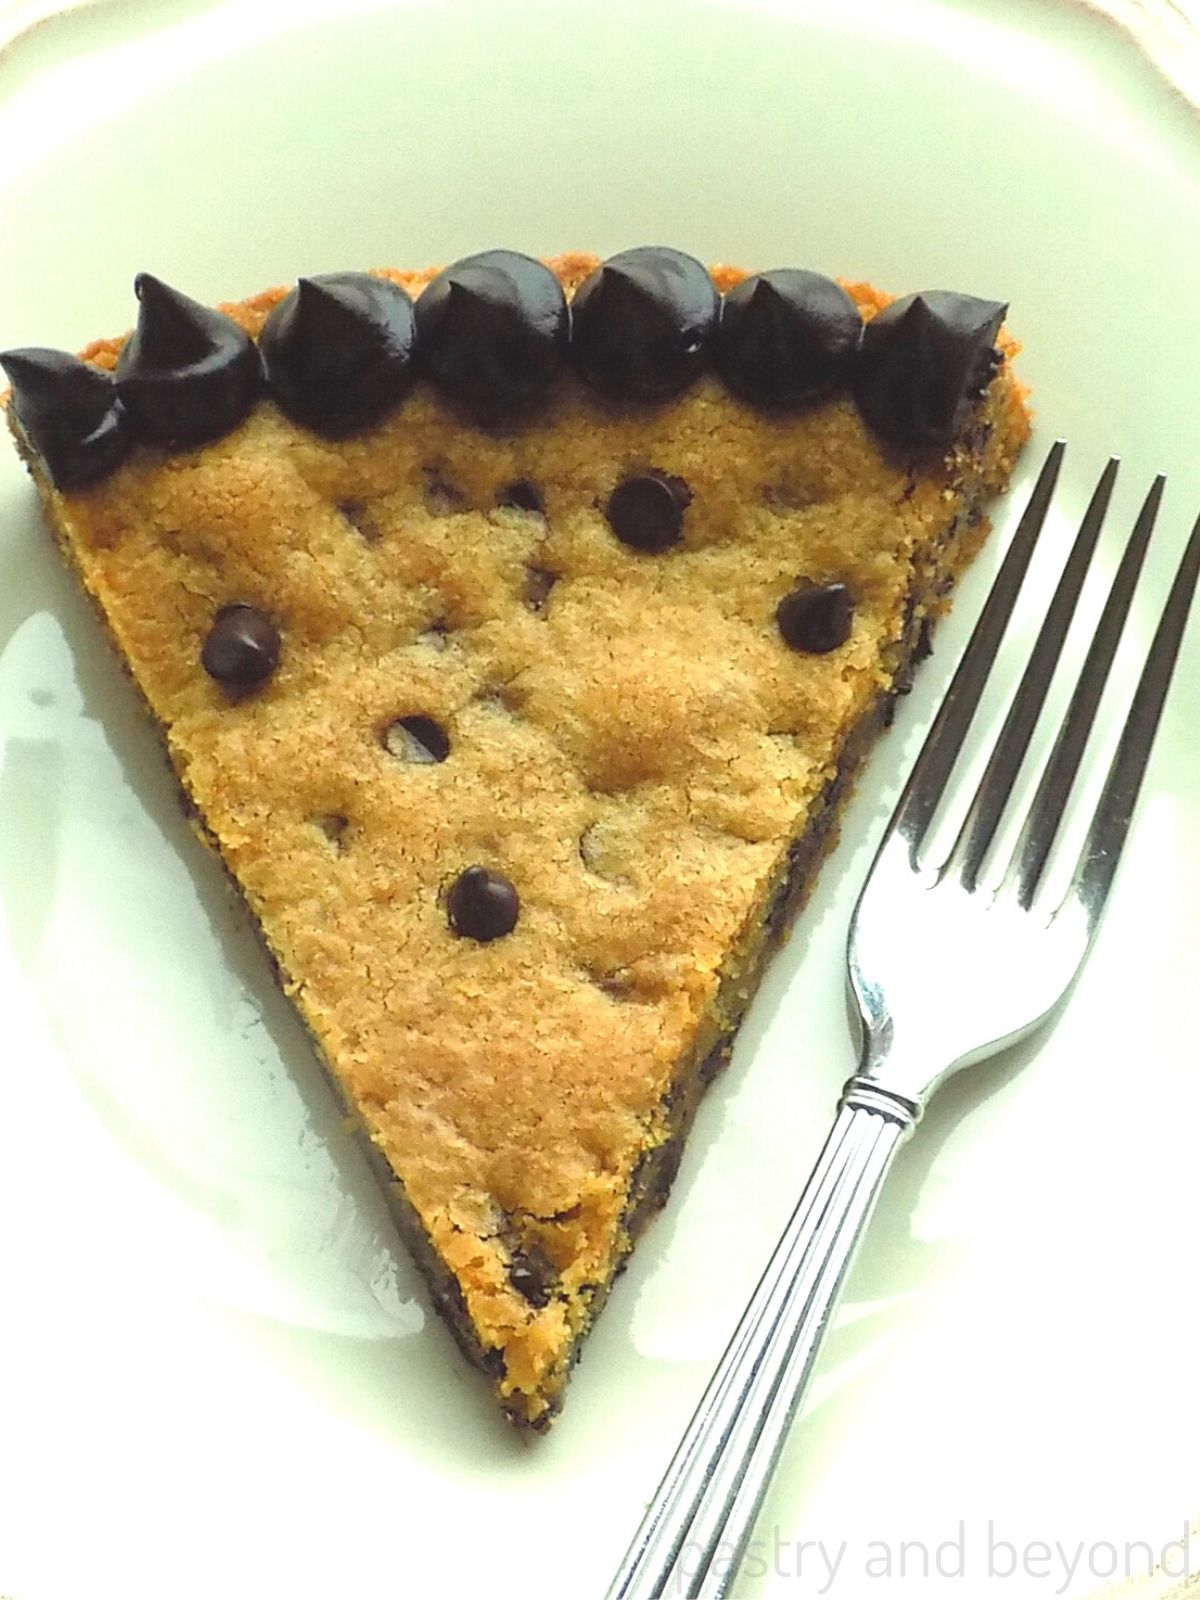 Chocolate chip cookie cake on a plate with a fork.